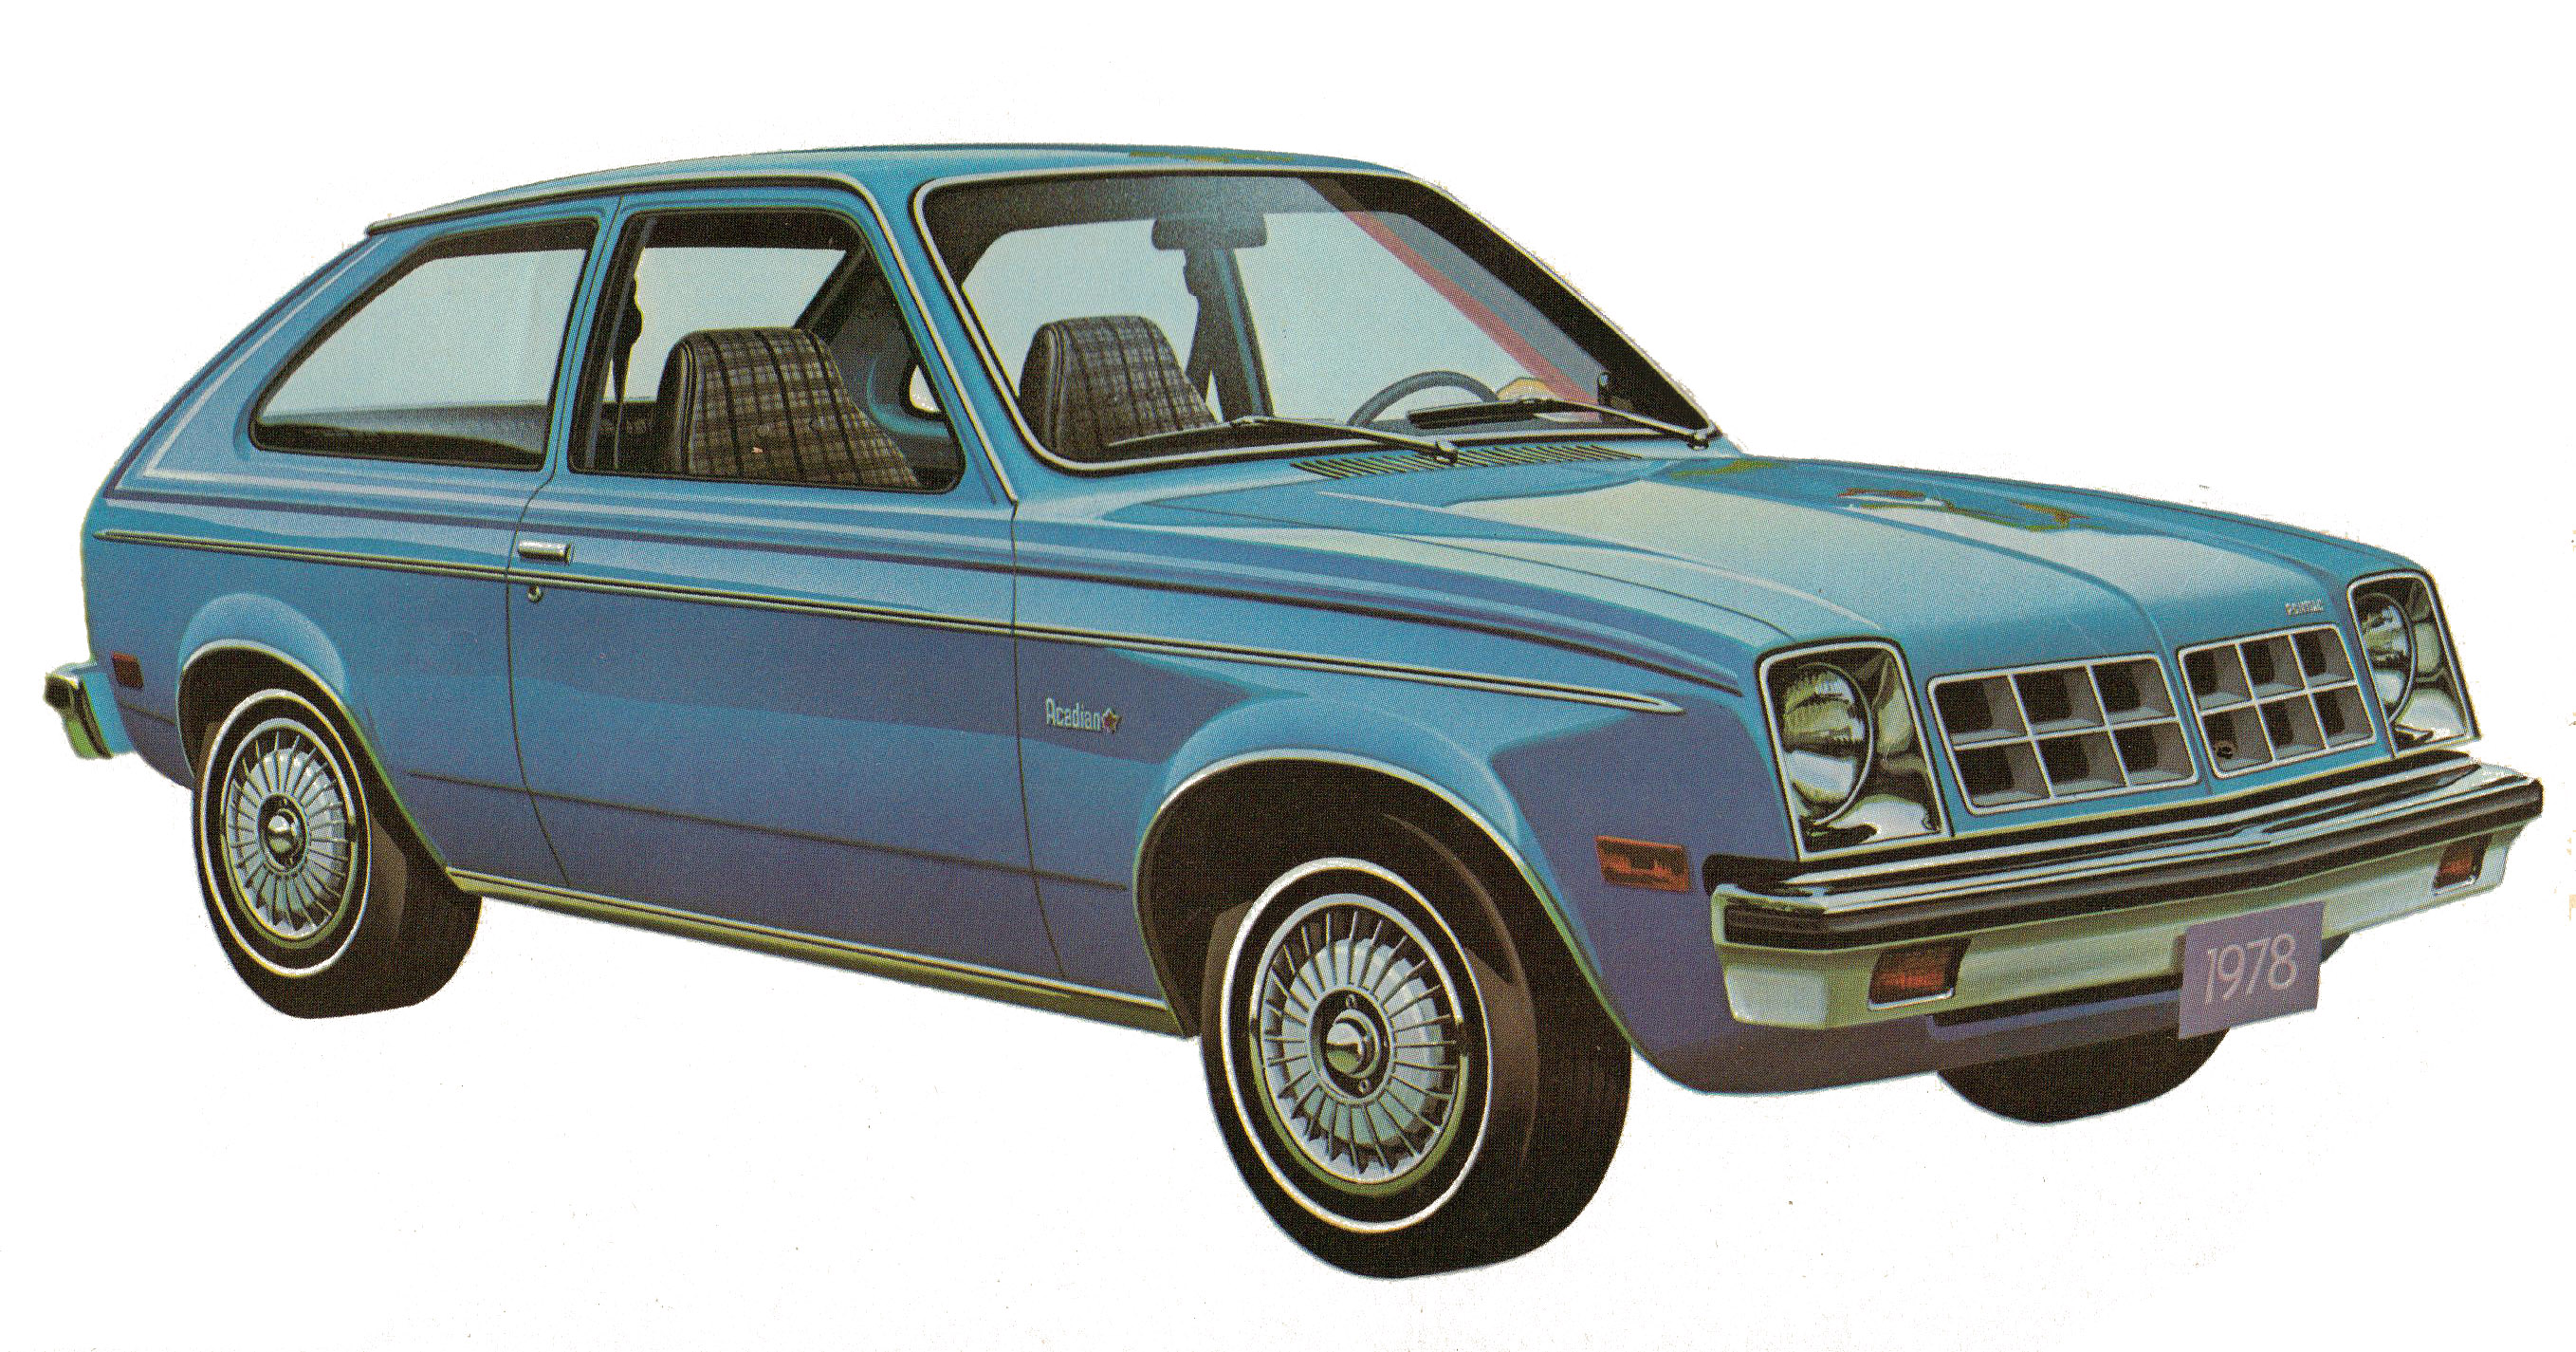 From 1976 to 1987, the Pontiac